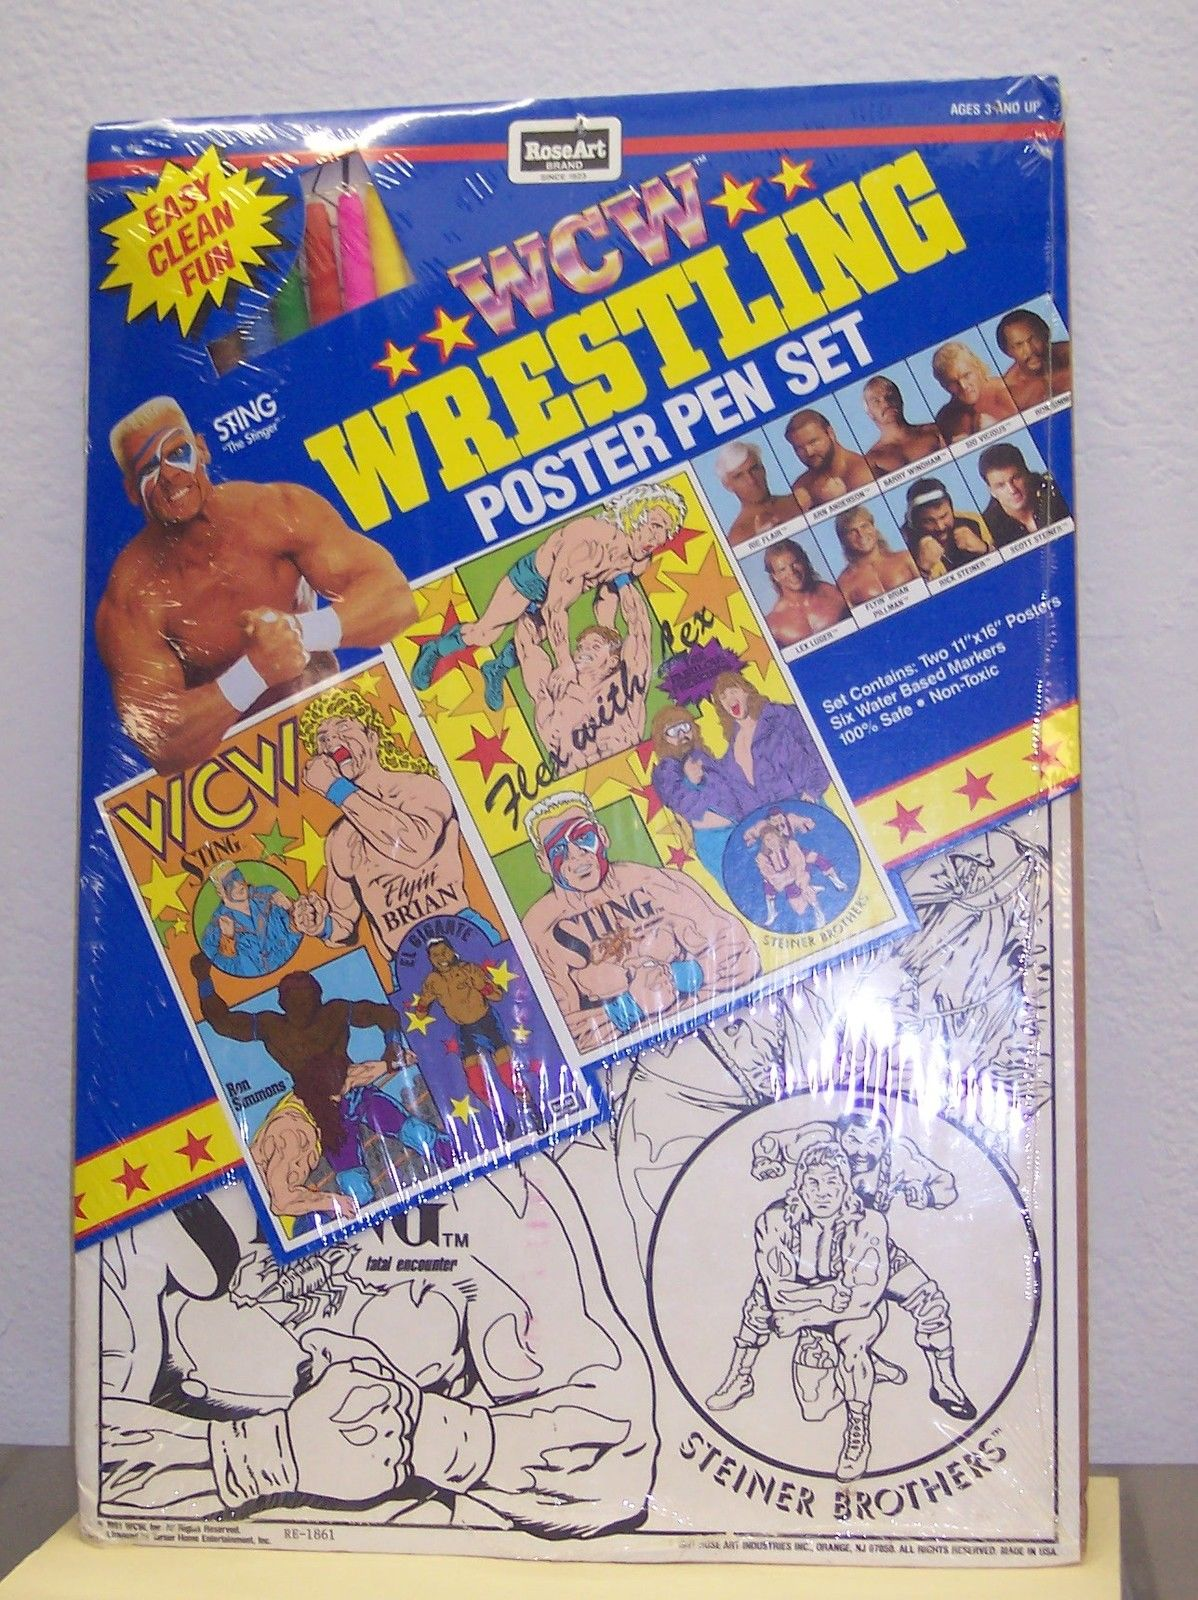 WCW RoseArt Wrestling Poster Pen Set 1